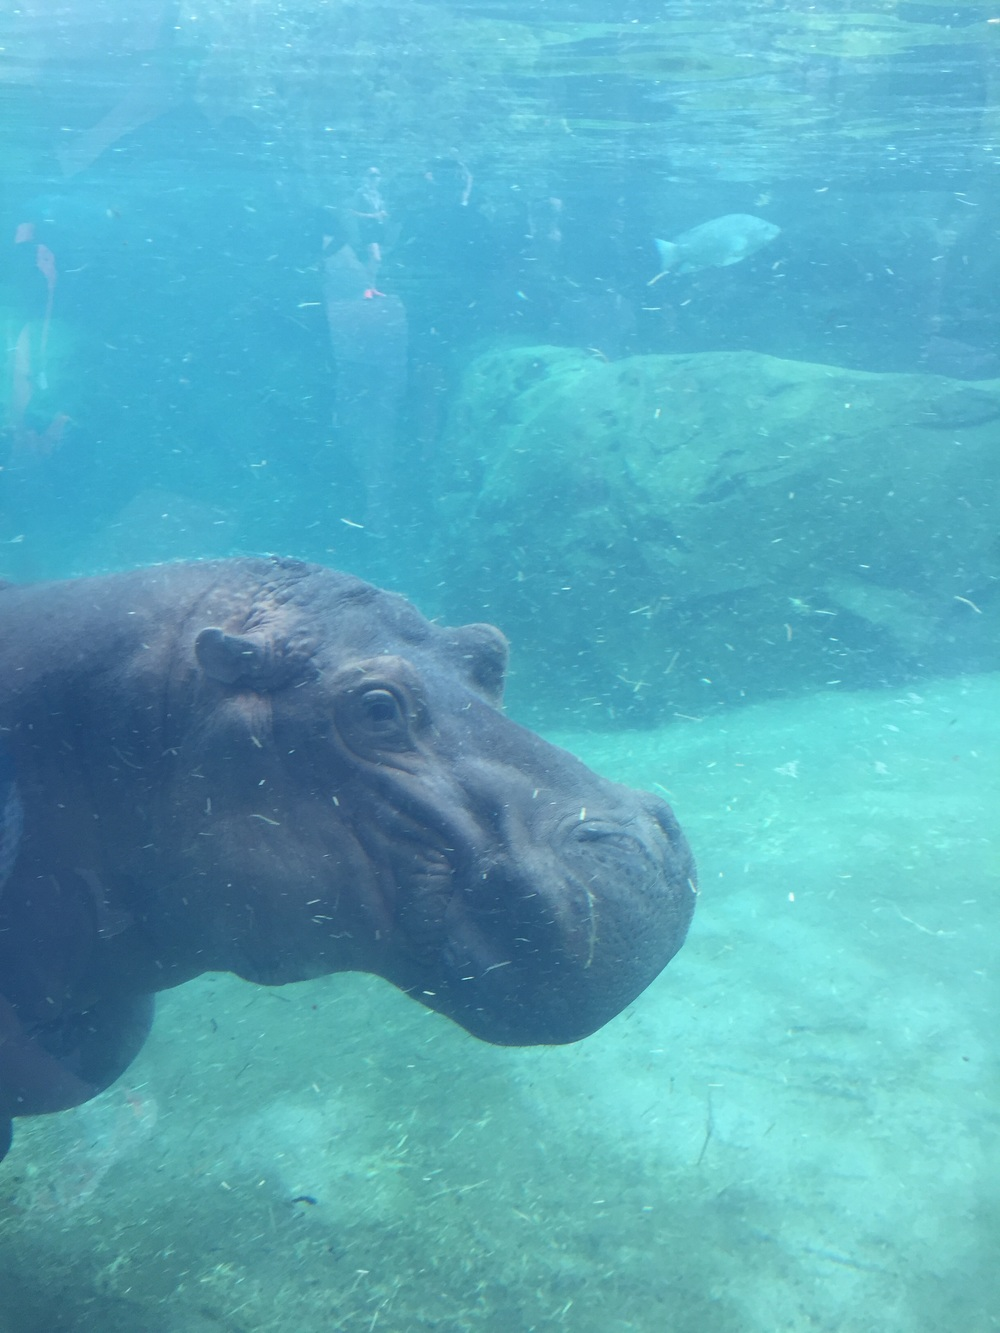 Underwater portion of the new hippo exhibit at the Cincinnati Zoo